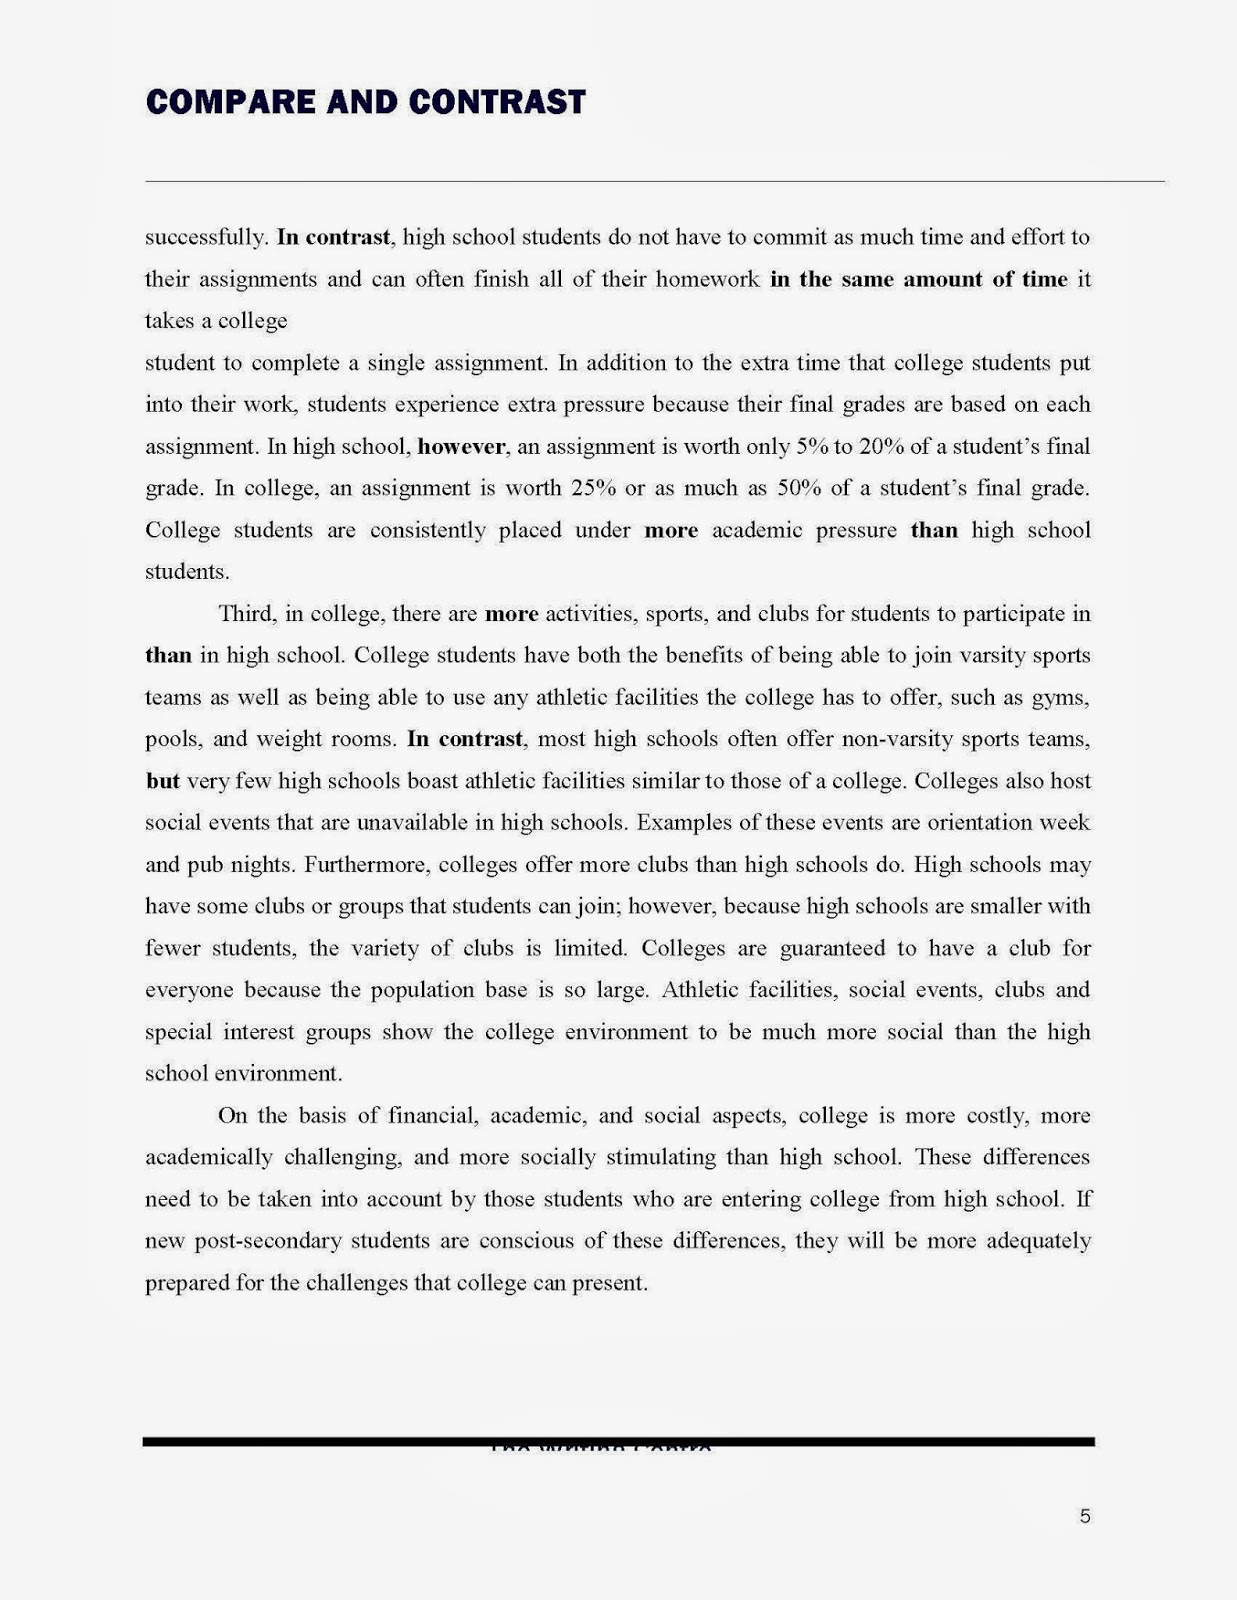 college essay thesis essay thesis statement example  high school vs college essay compare and contrast differences essay on the giver by lois lowry